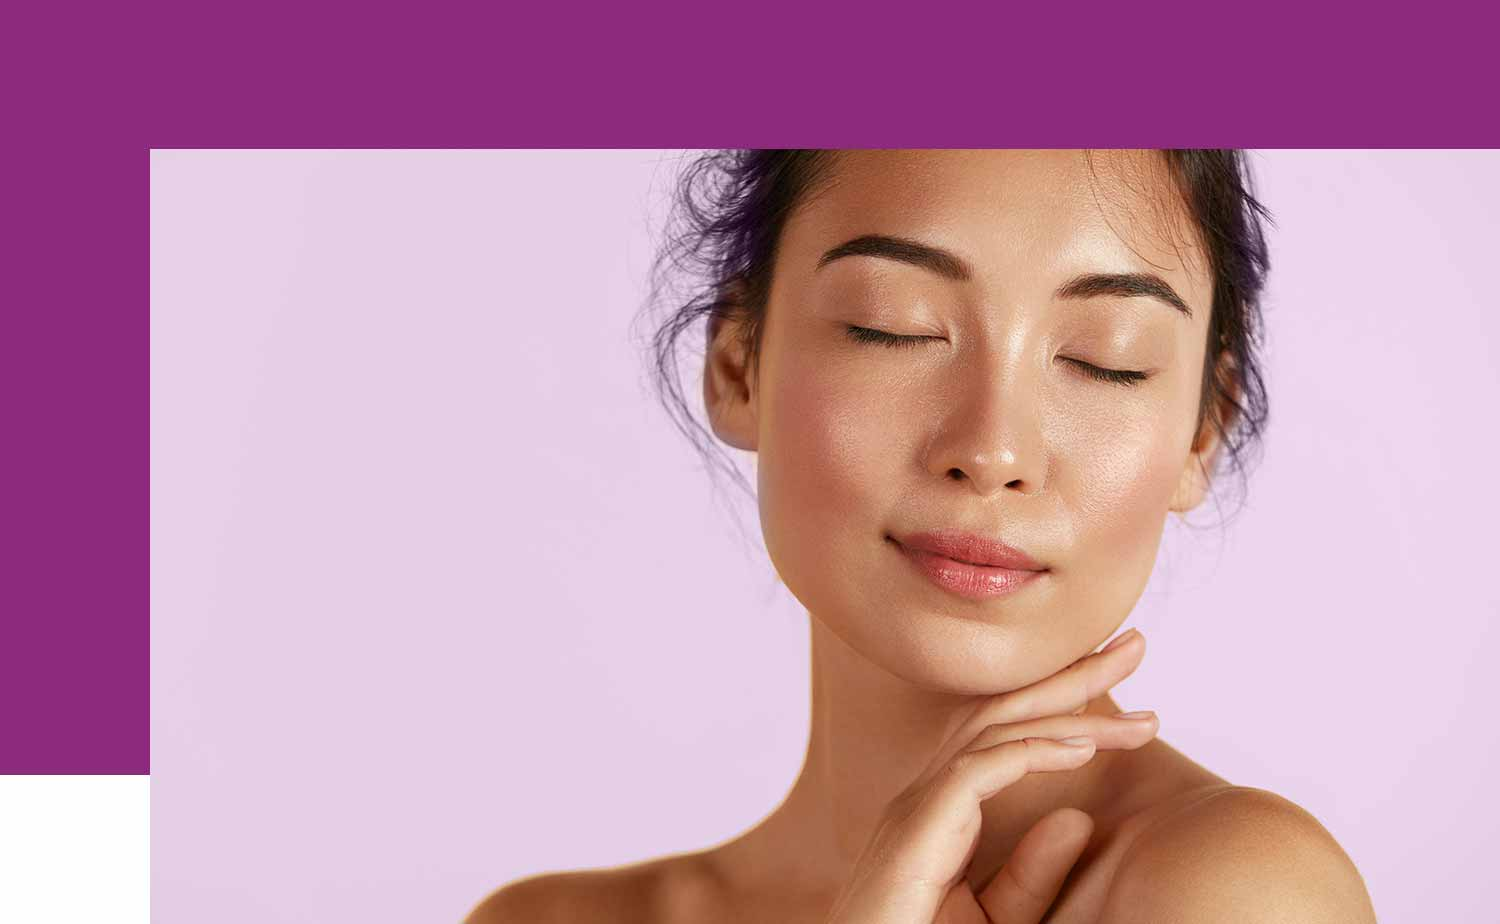 Woman  with glowing skin over skin care shop button